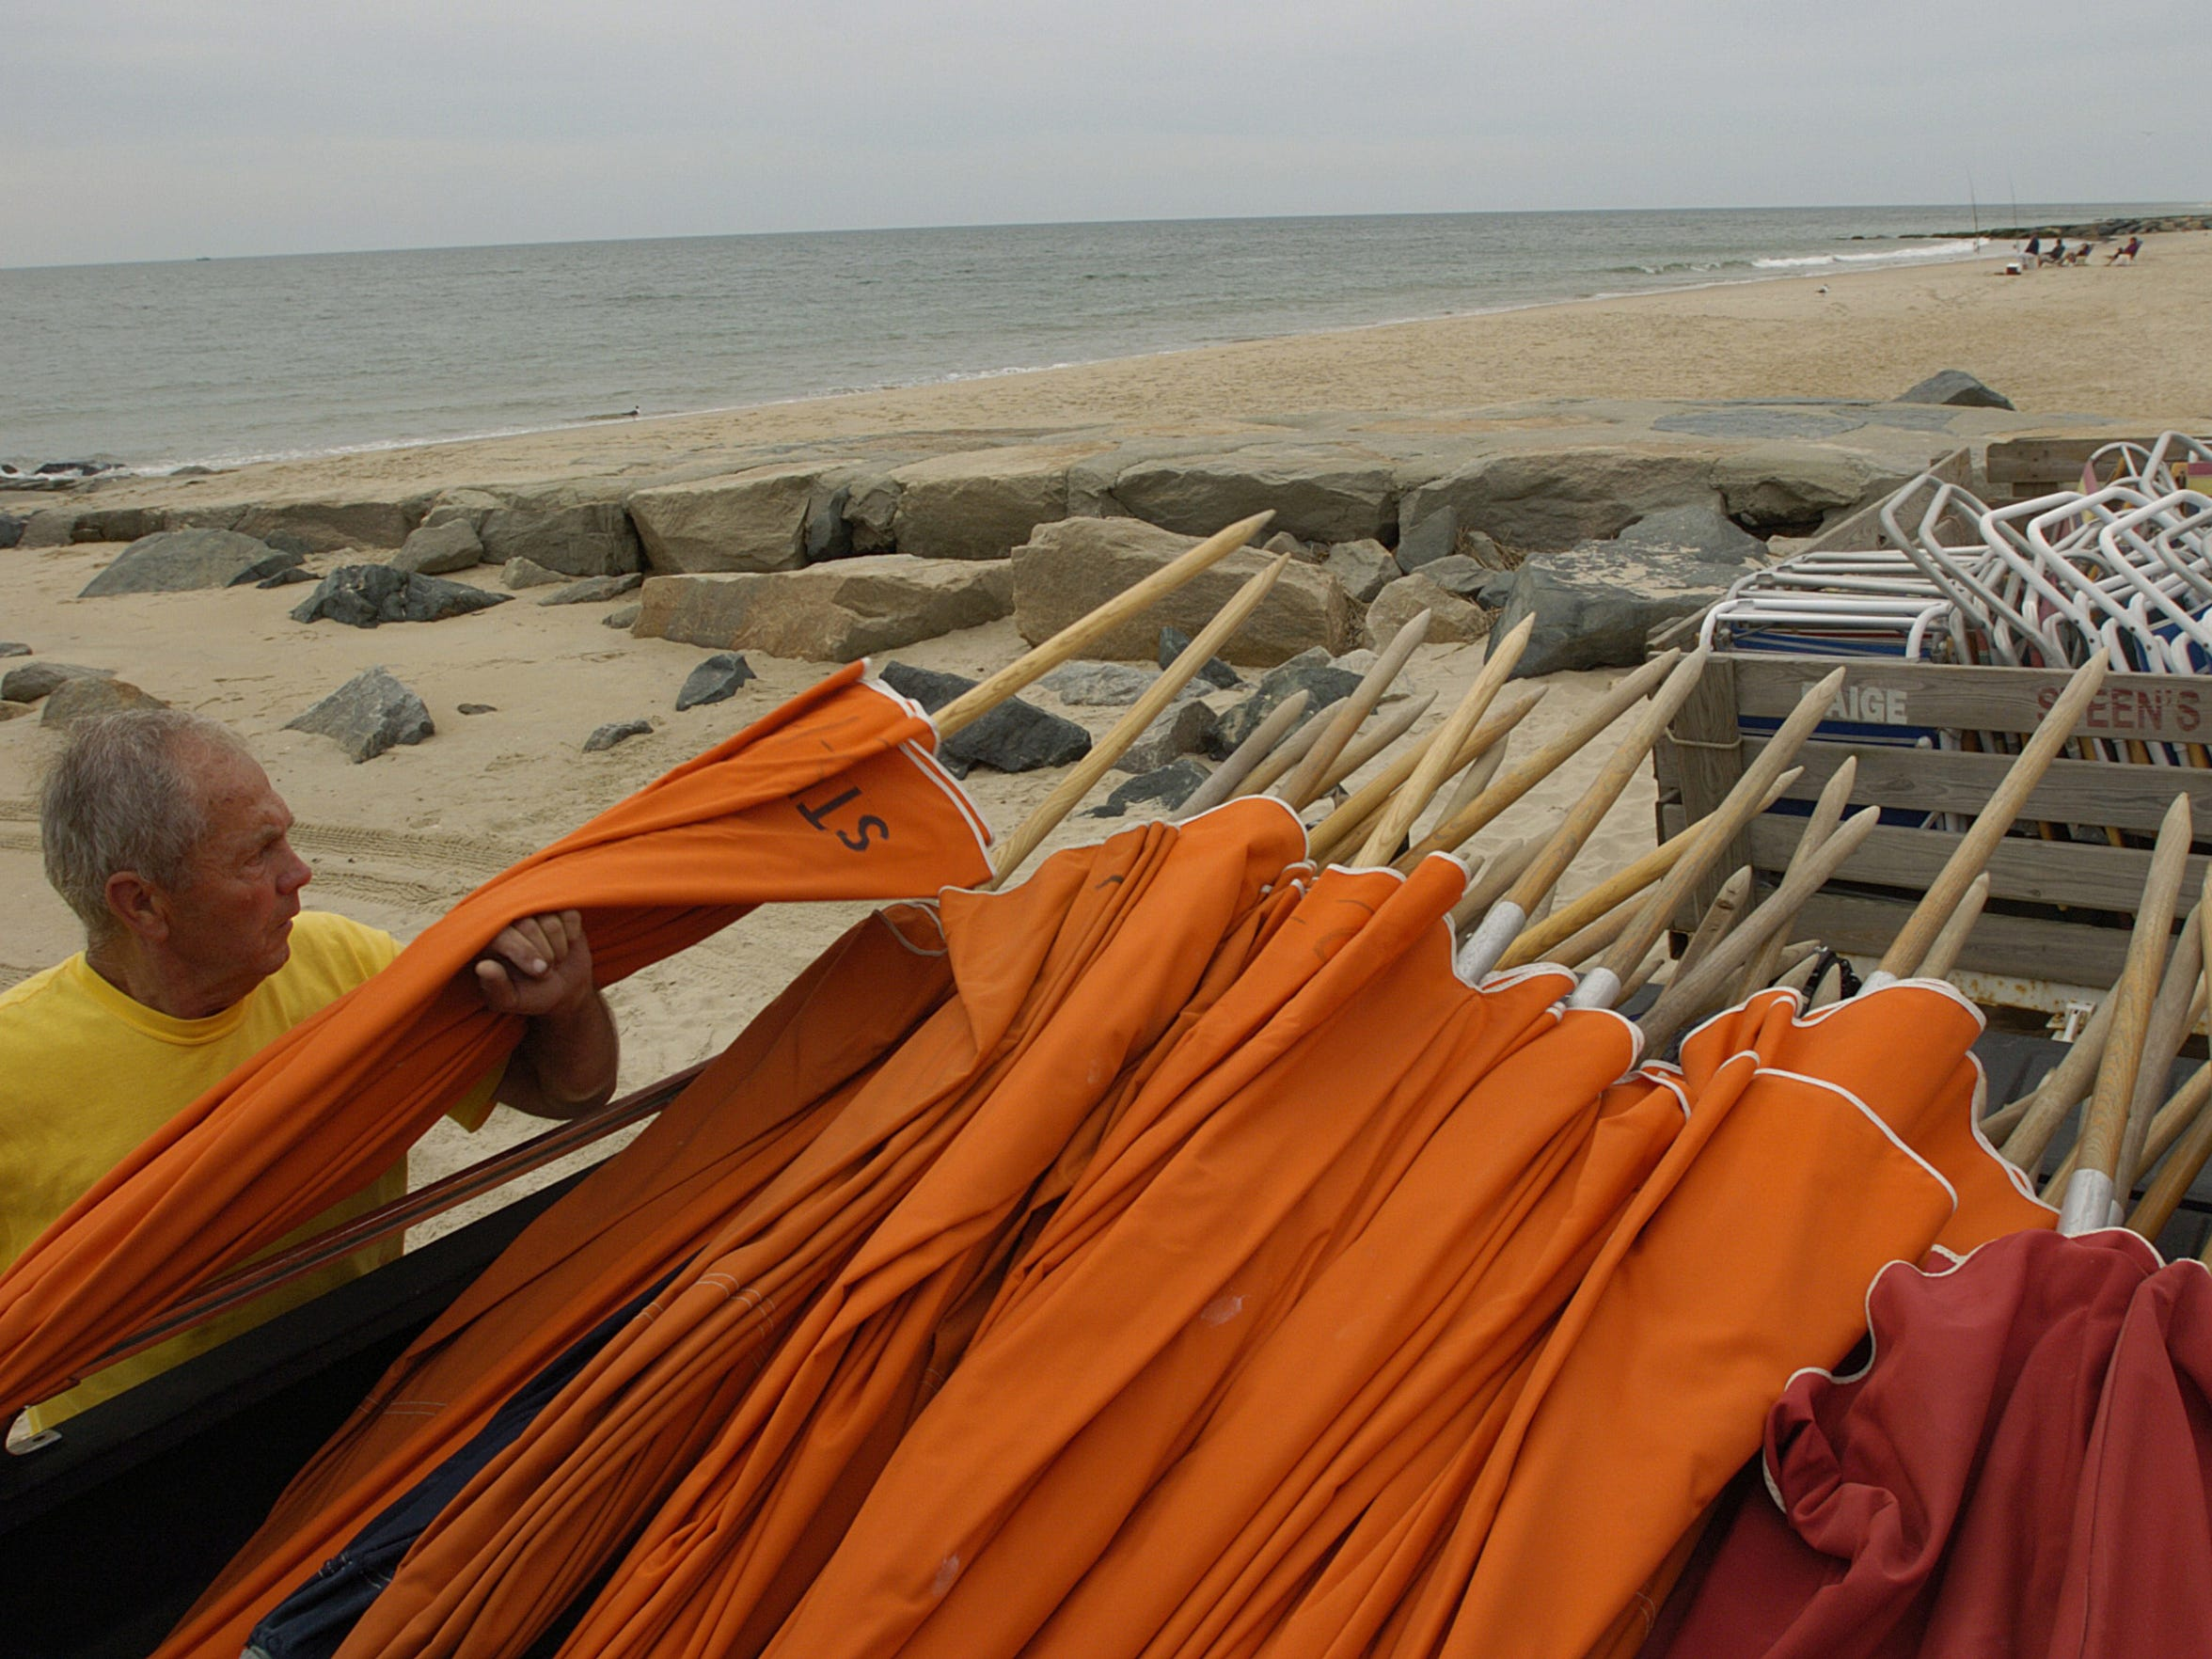 Keeping up with coastal storms and beach erosion has been a problem for years. In 2006, Ron Steen outfitted his beach stands for the summer season. He has rented umbrellas, chairs and boogie boards on Bethany Beach for the last 58 years. In 2006, the beach was in better shape than it is today.